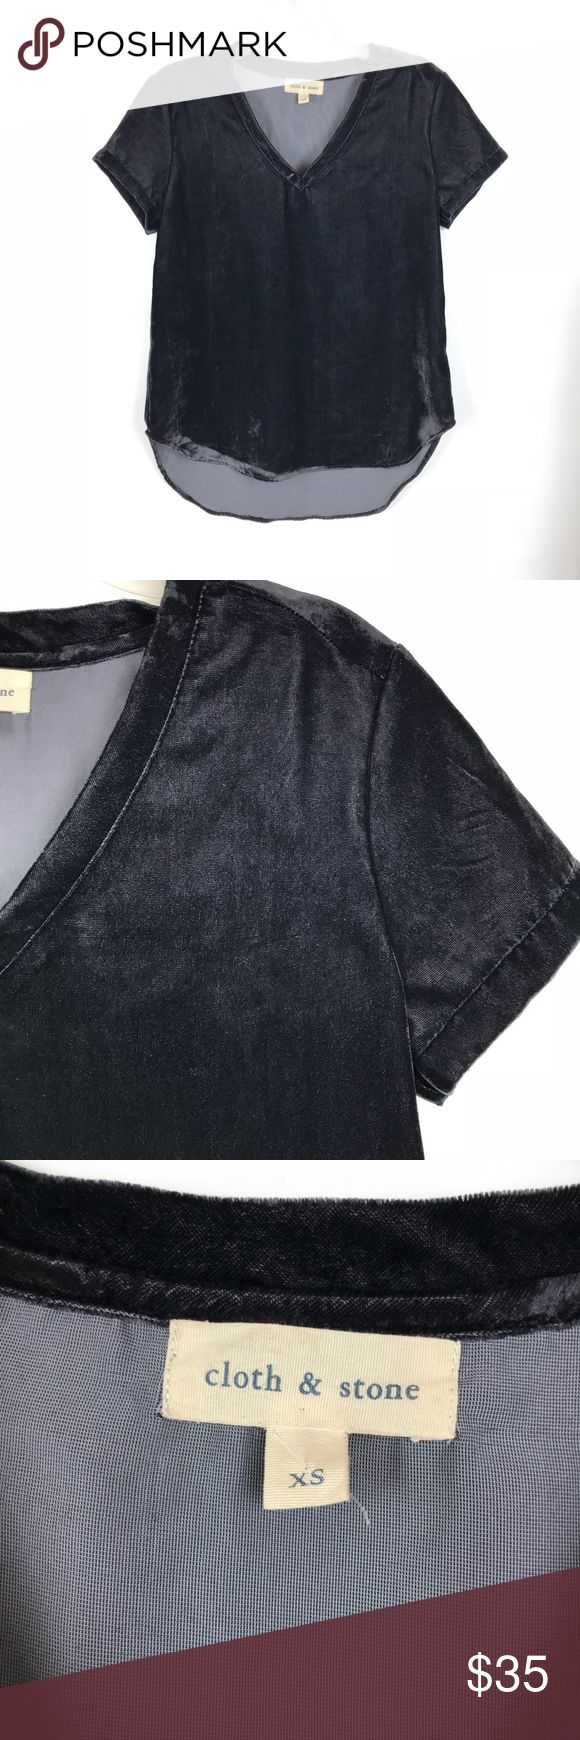 "ANTHROPOLOGIE | Cloth & Stone Velvet Blouse Dark gray. Soft and v neck.   Condition: new without tags Measurements (laying flat): 18.5"" pit to pit 27"" length  Item location: bin 21 Anthropologie Tops"